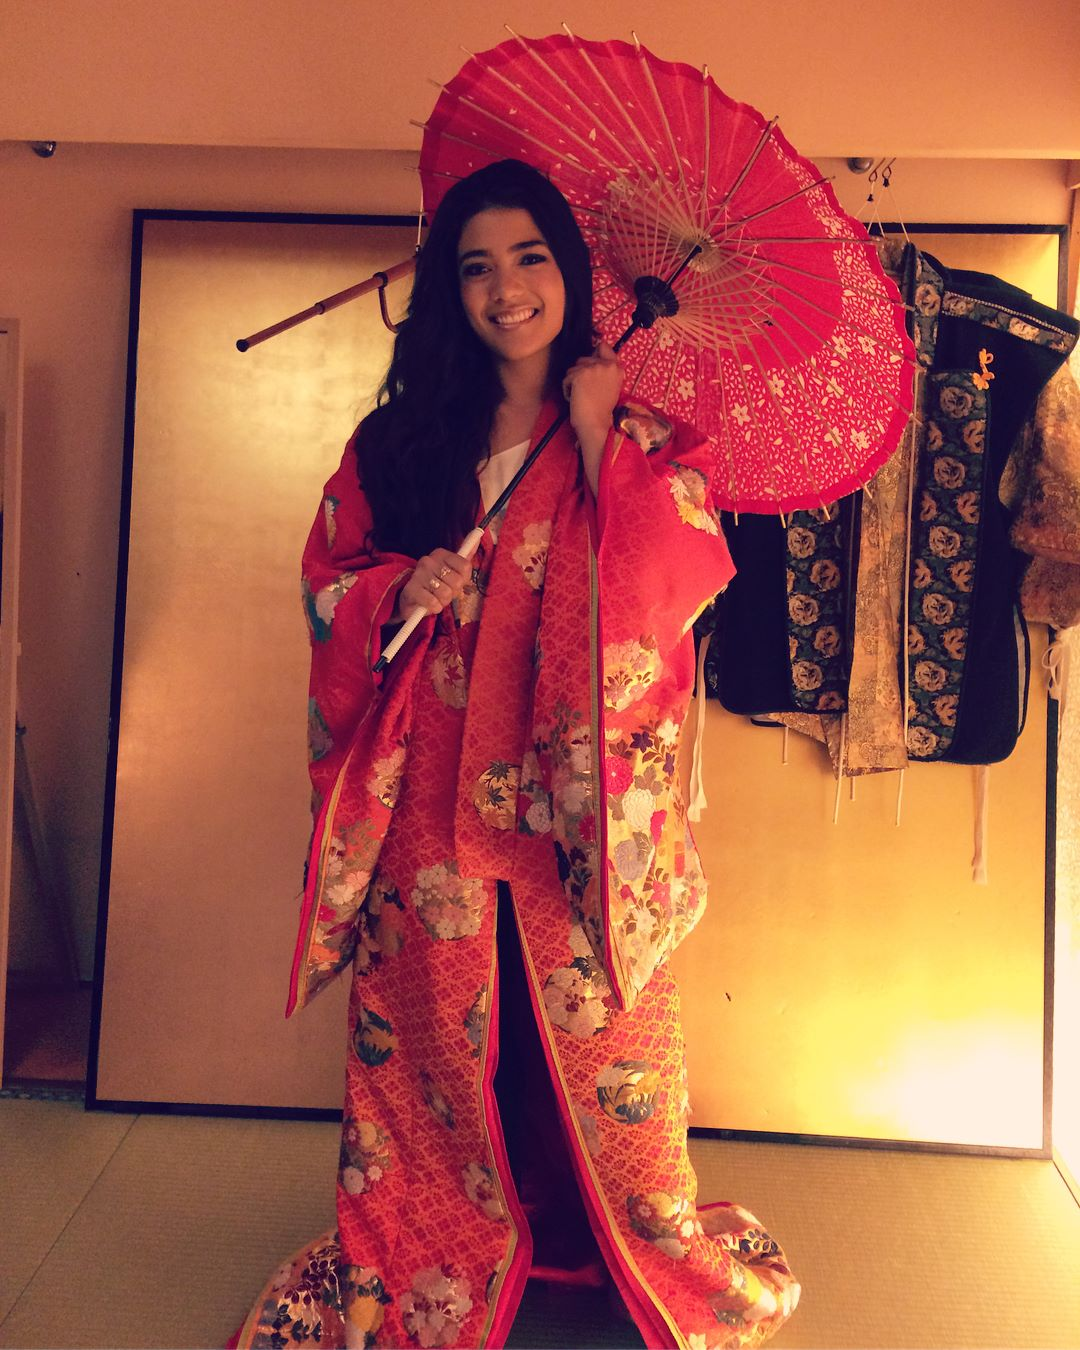 Girl wearing a red, floral kimono at the Samurai Museum in Tokyo